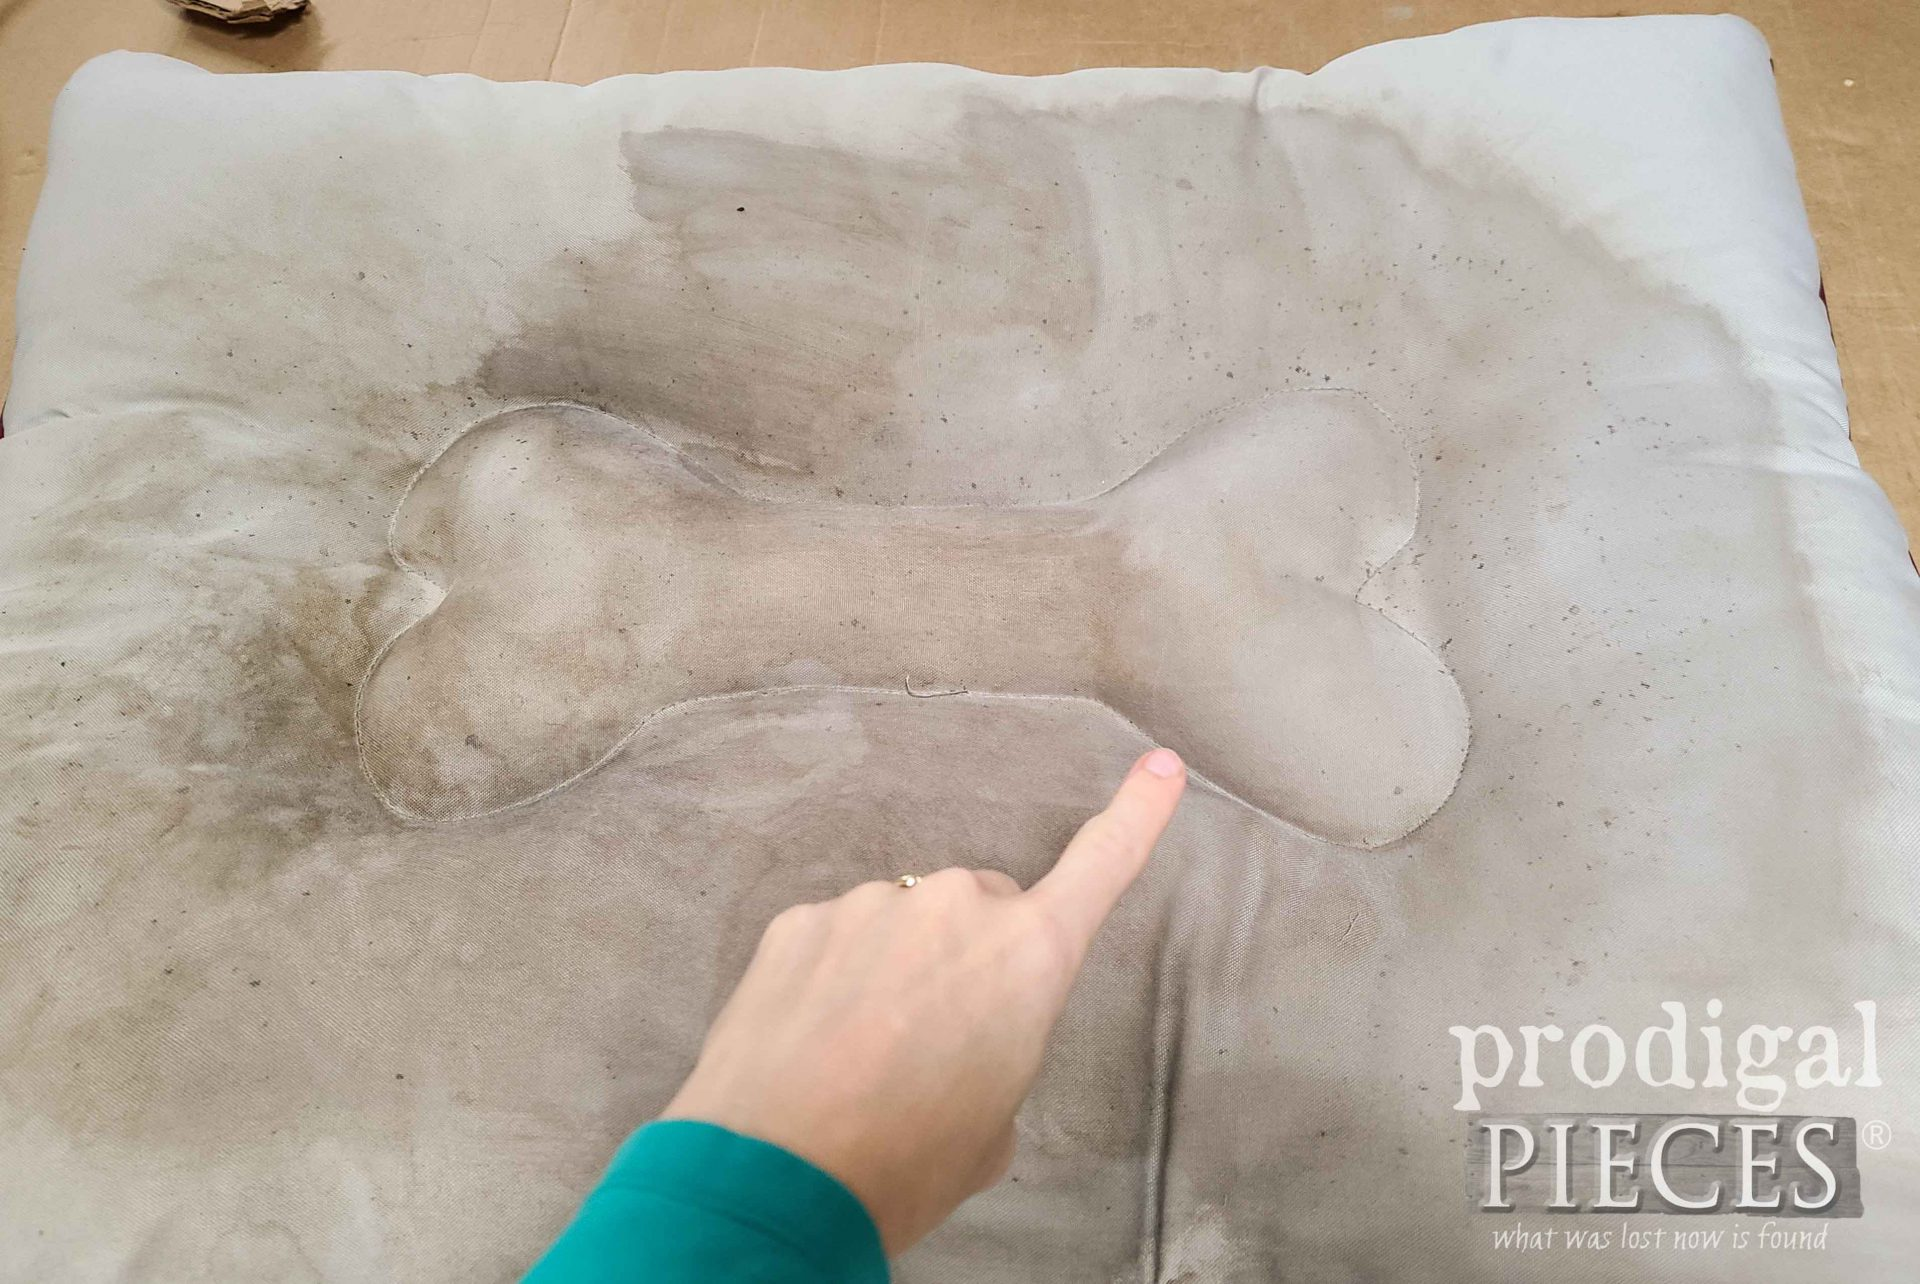 Pet Bed Steam Cleaning Proof by Prodigal Pieces | prodigalpieces.com #prodigalpieces